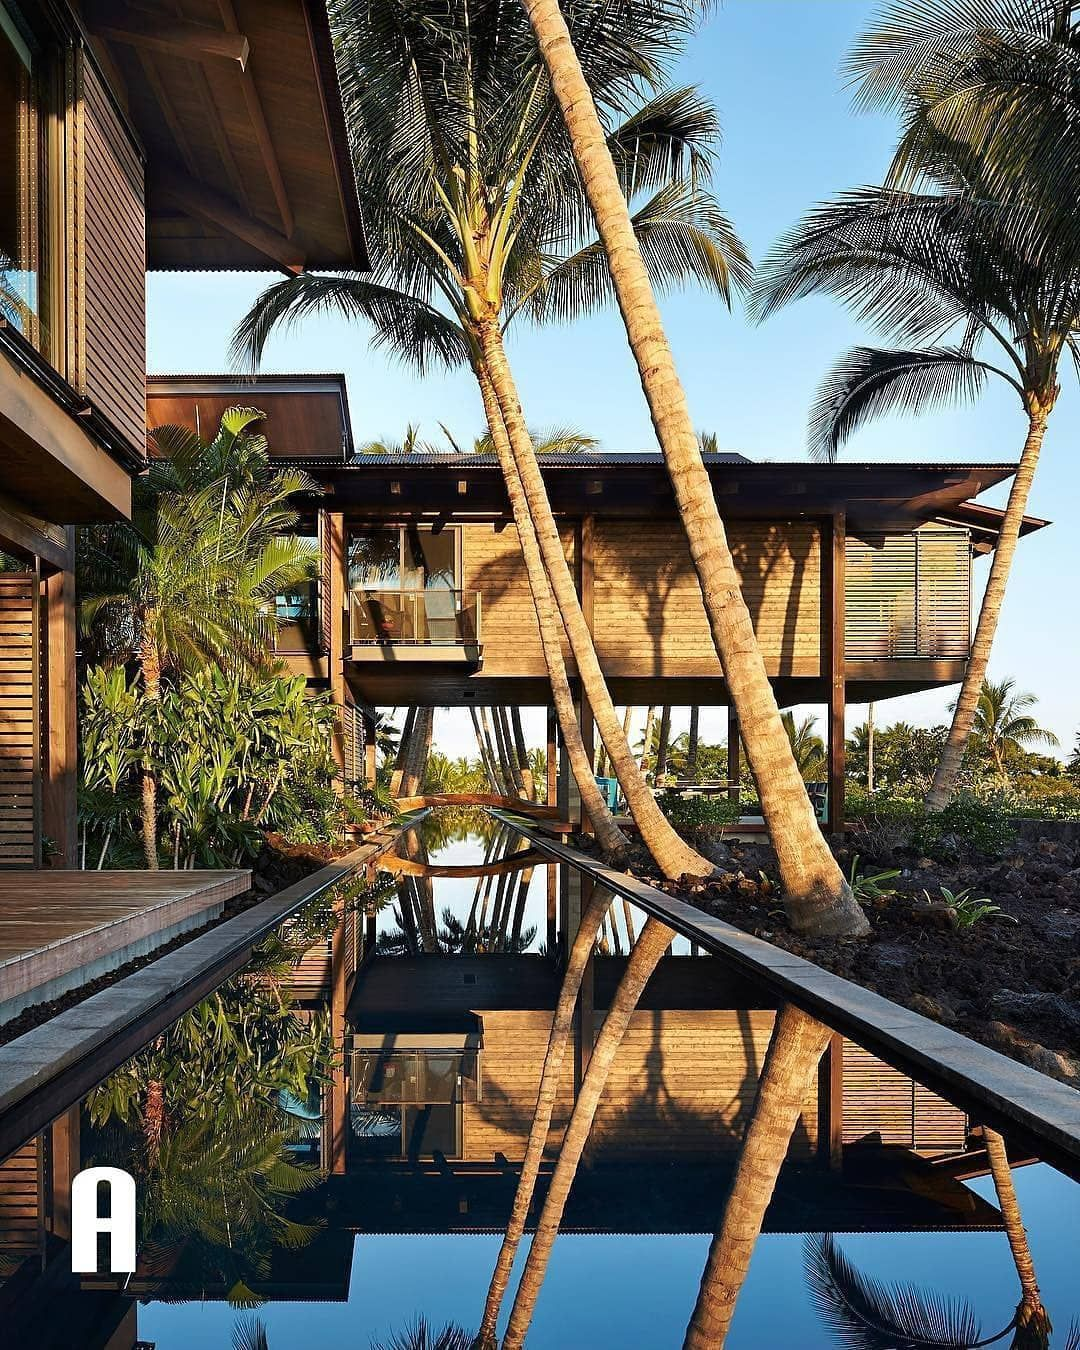 Hawaiian Home Design Ideas: Pick ONE A Or B? Follow Us @dopehomestead For More! A. The